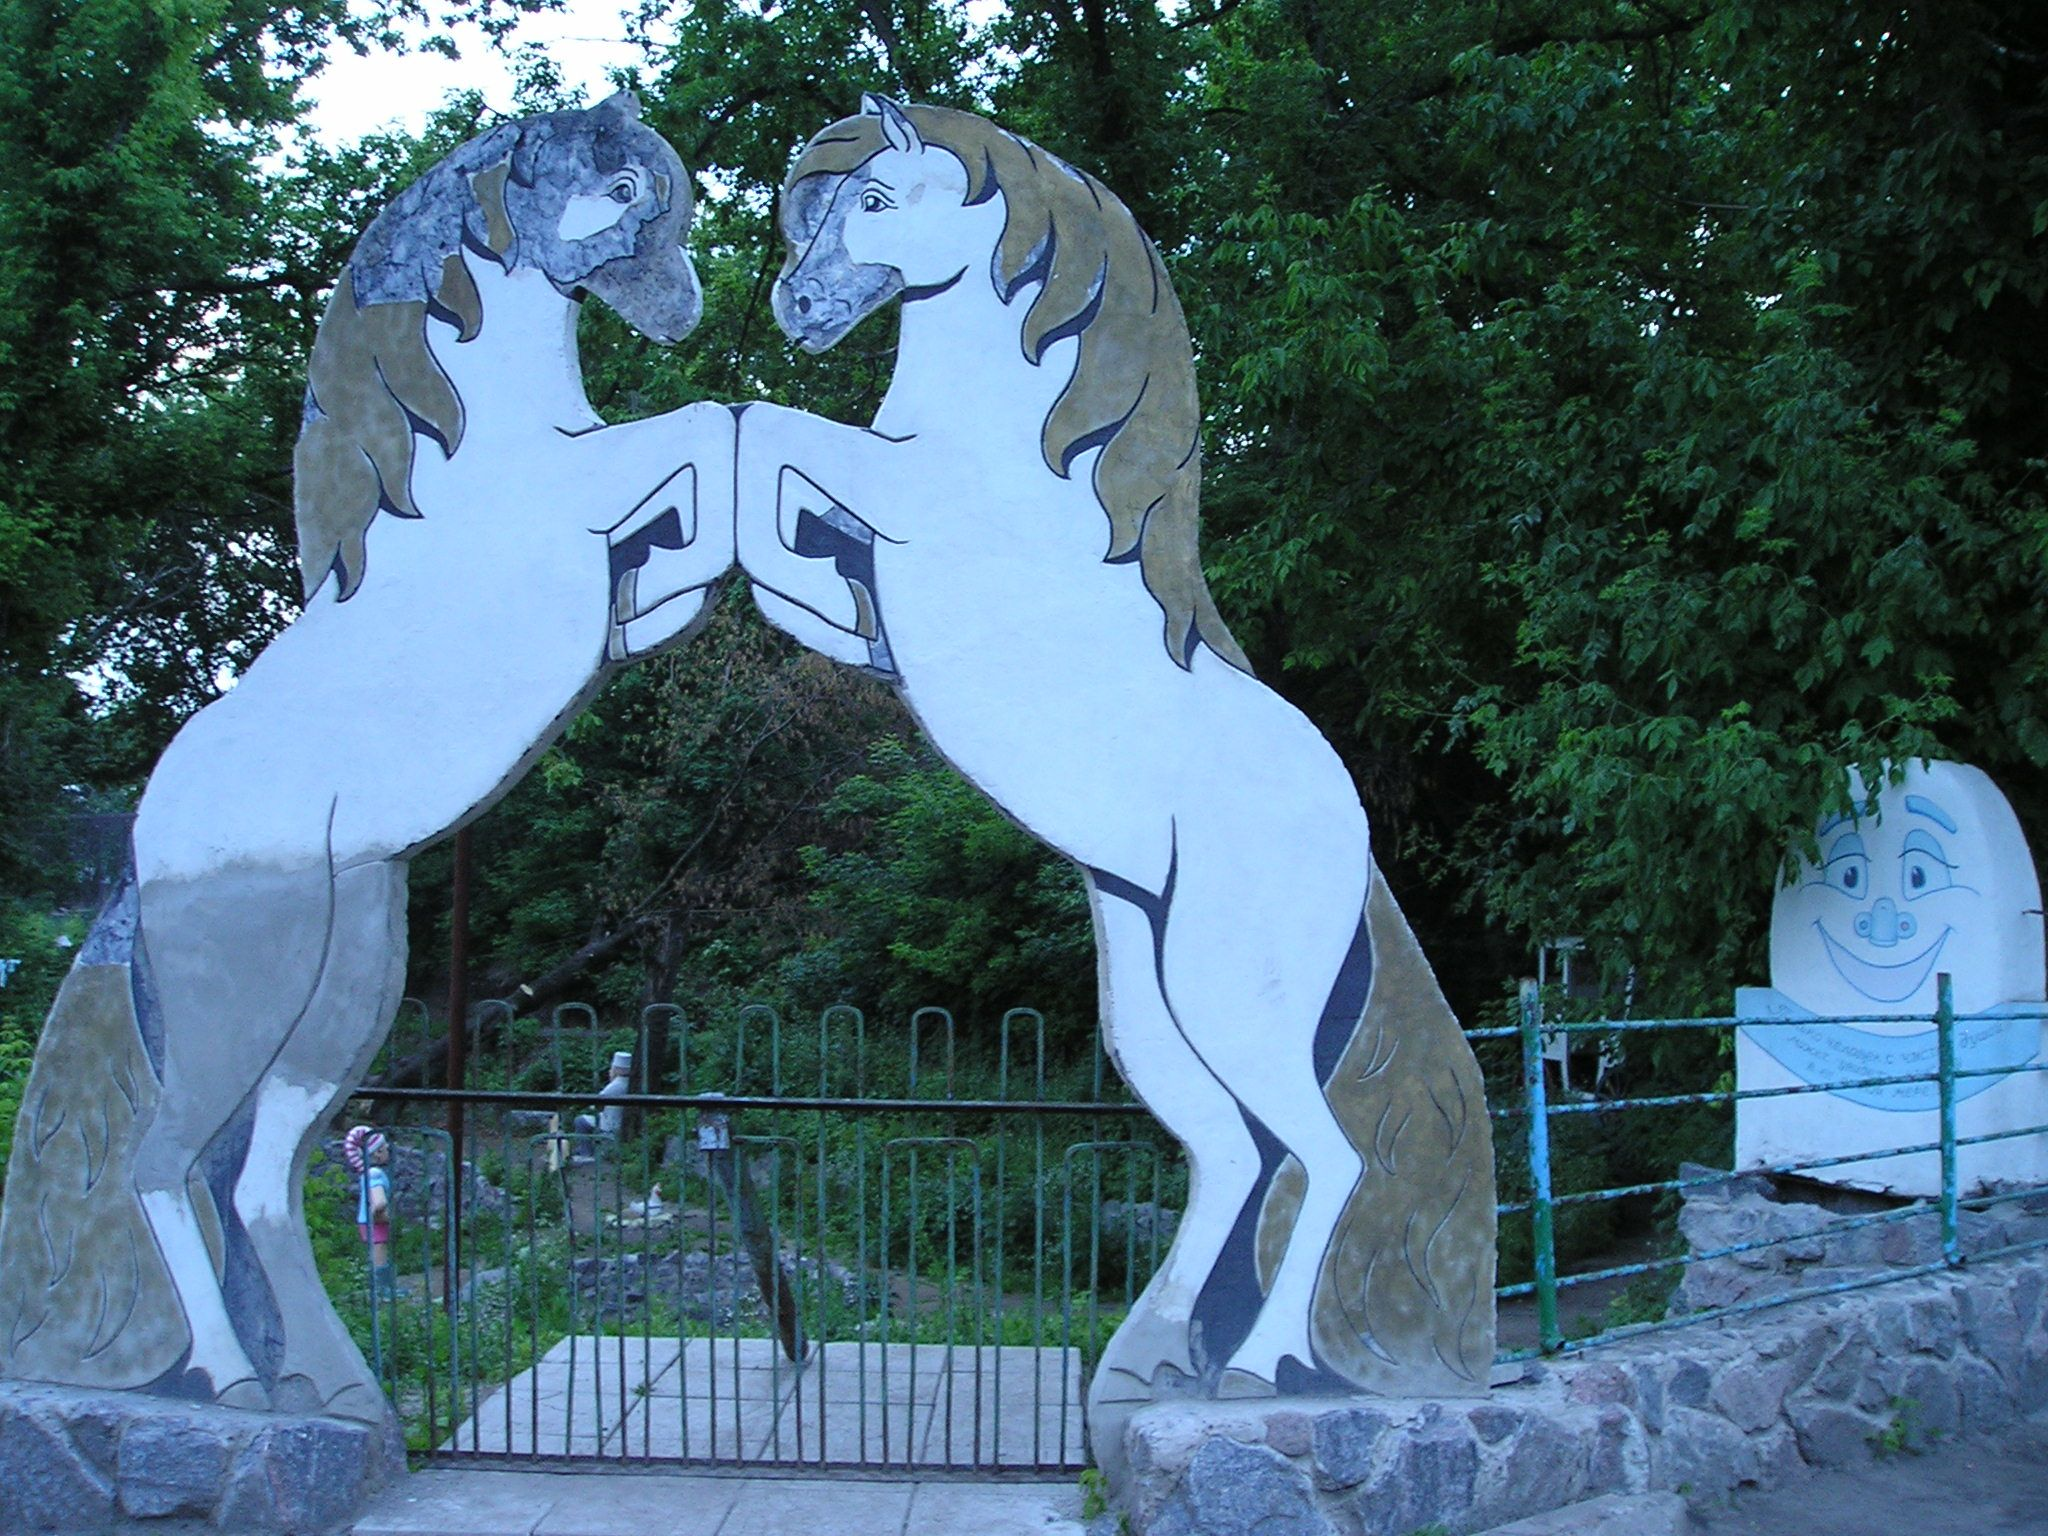 A gate at the Kharkov Zoo in eastern Ukraine.